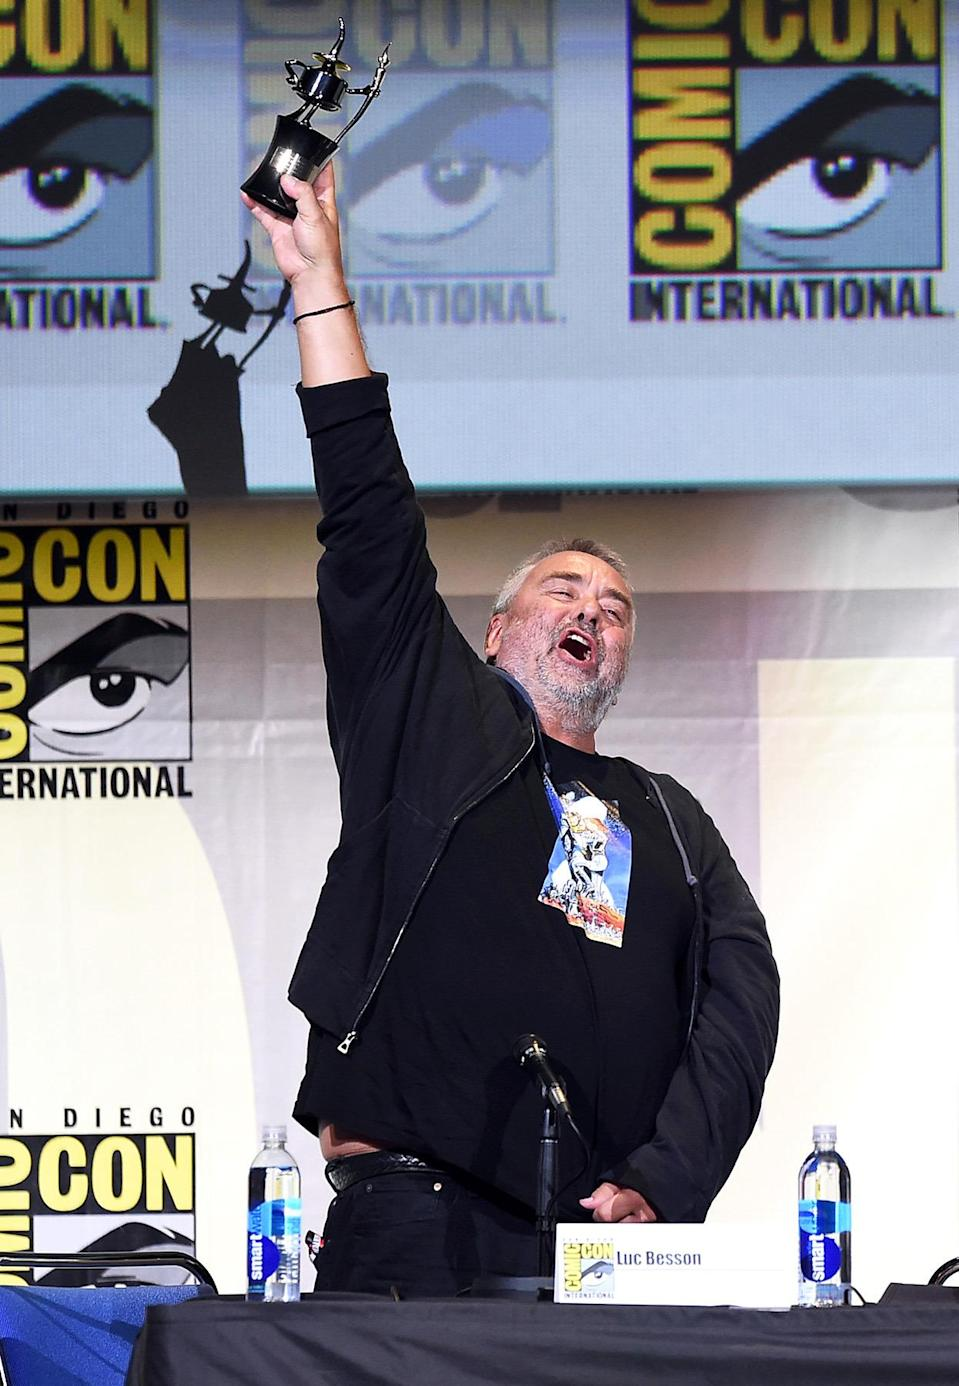 <p>Director Luc Besson on July 21. <i>(Photo: Kevin Winter/Getty Images)</i></p>